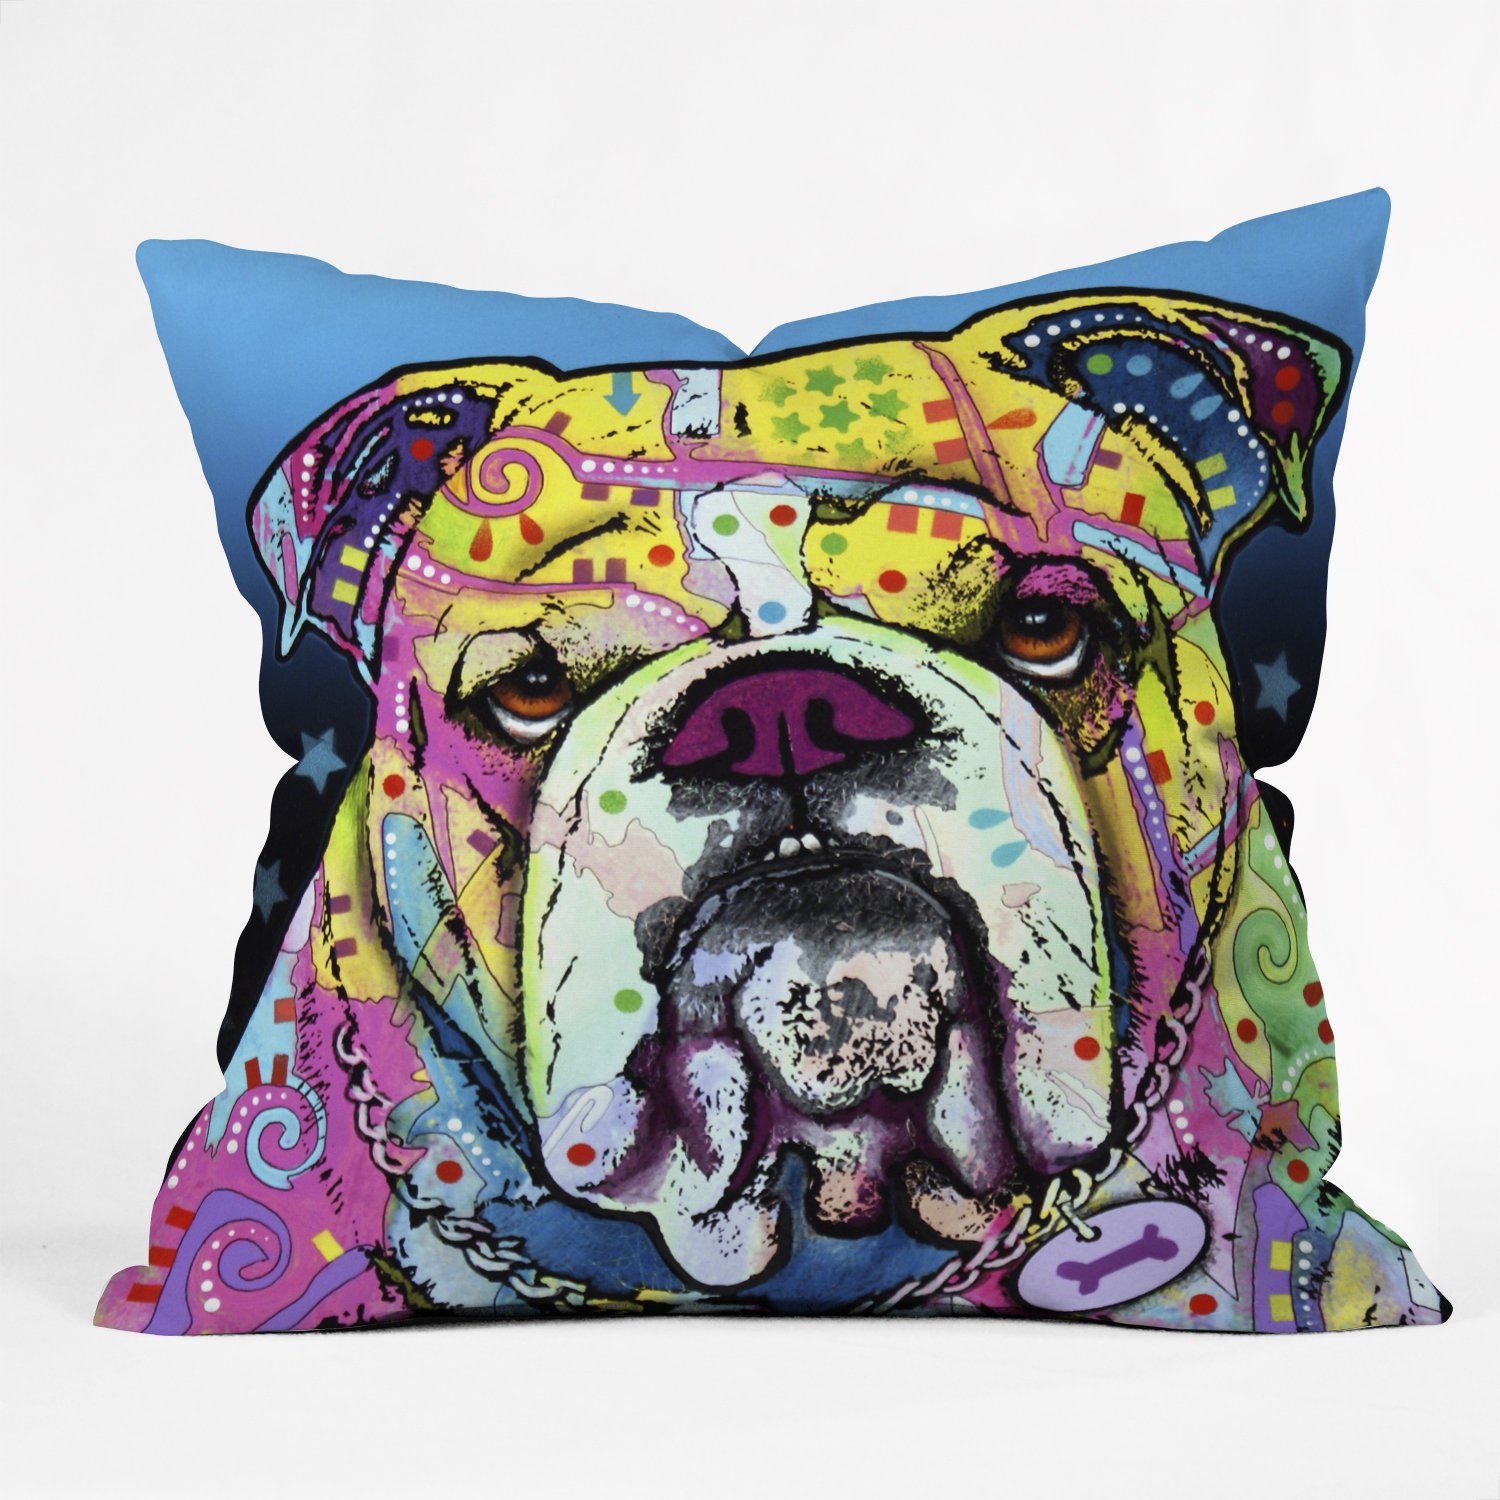 Funky Cool Unique Modern Colorful Throw Pillows – SKARRO – Be Fun